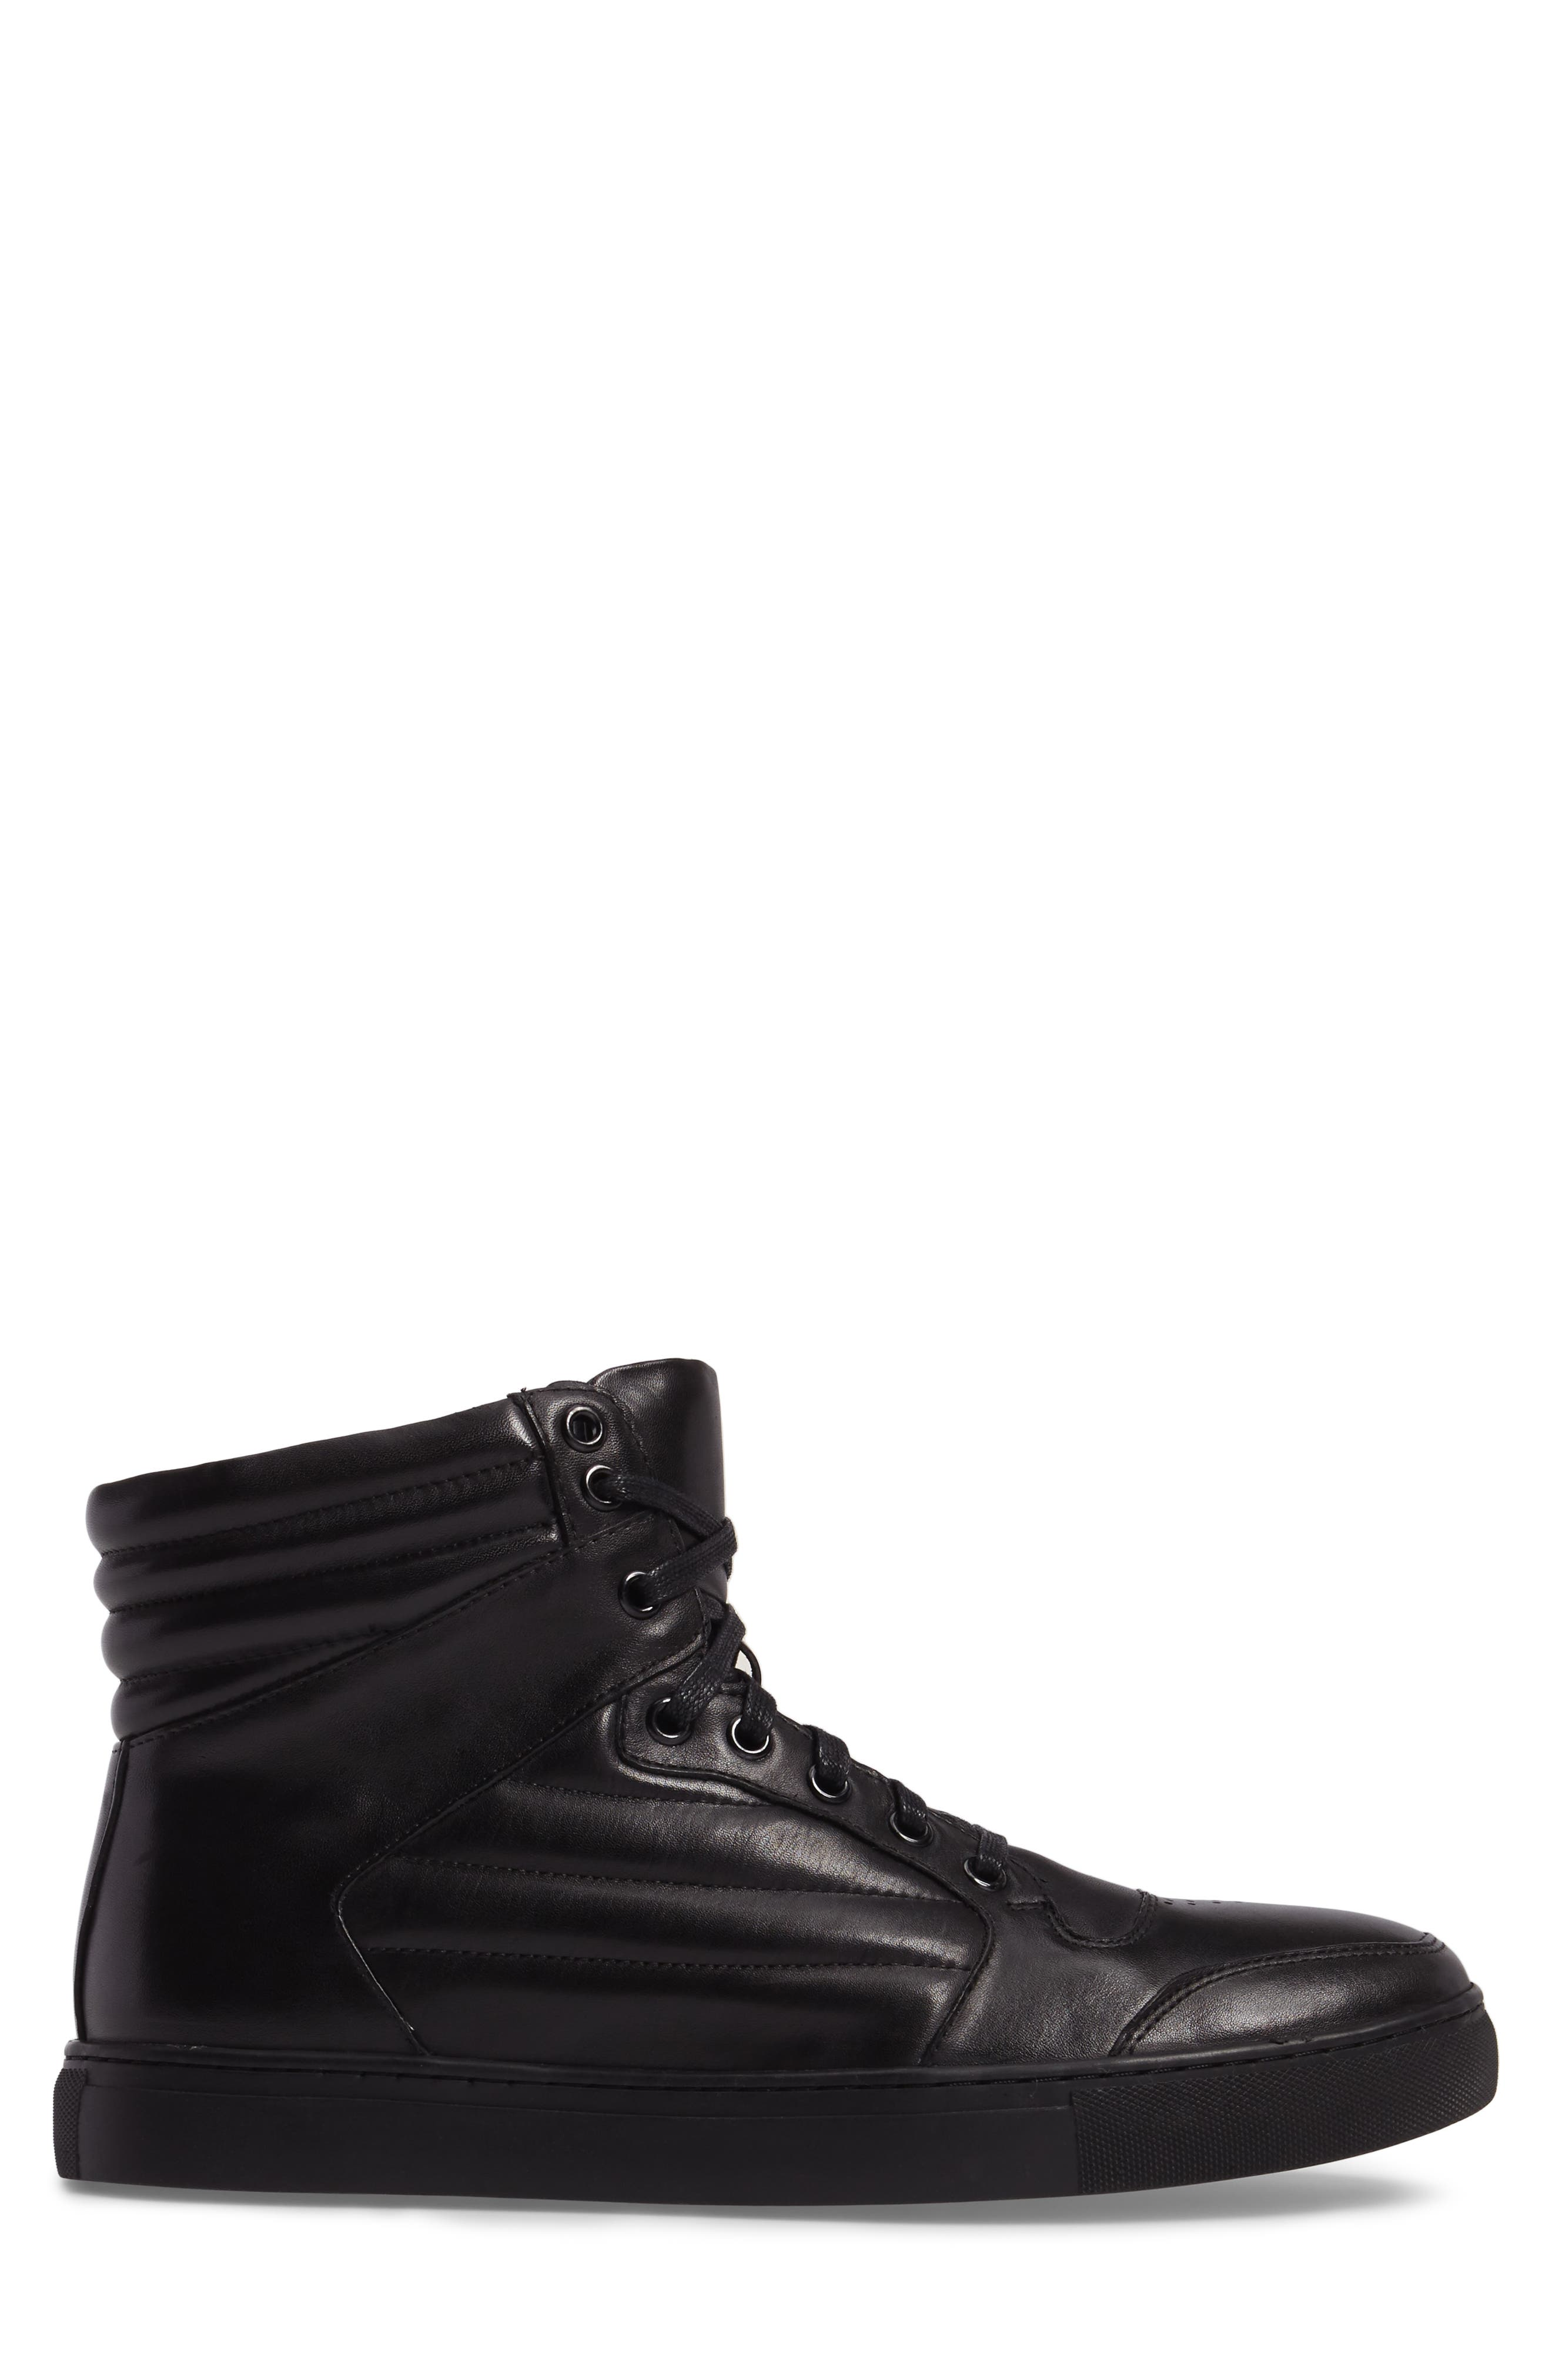 Vacdes High Top Sneaker,                             Alternate thumbnail 3, color,                             Black Leather